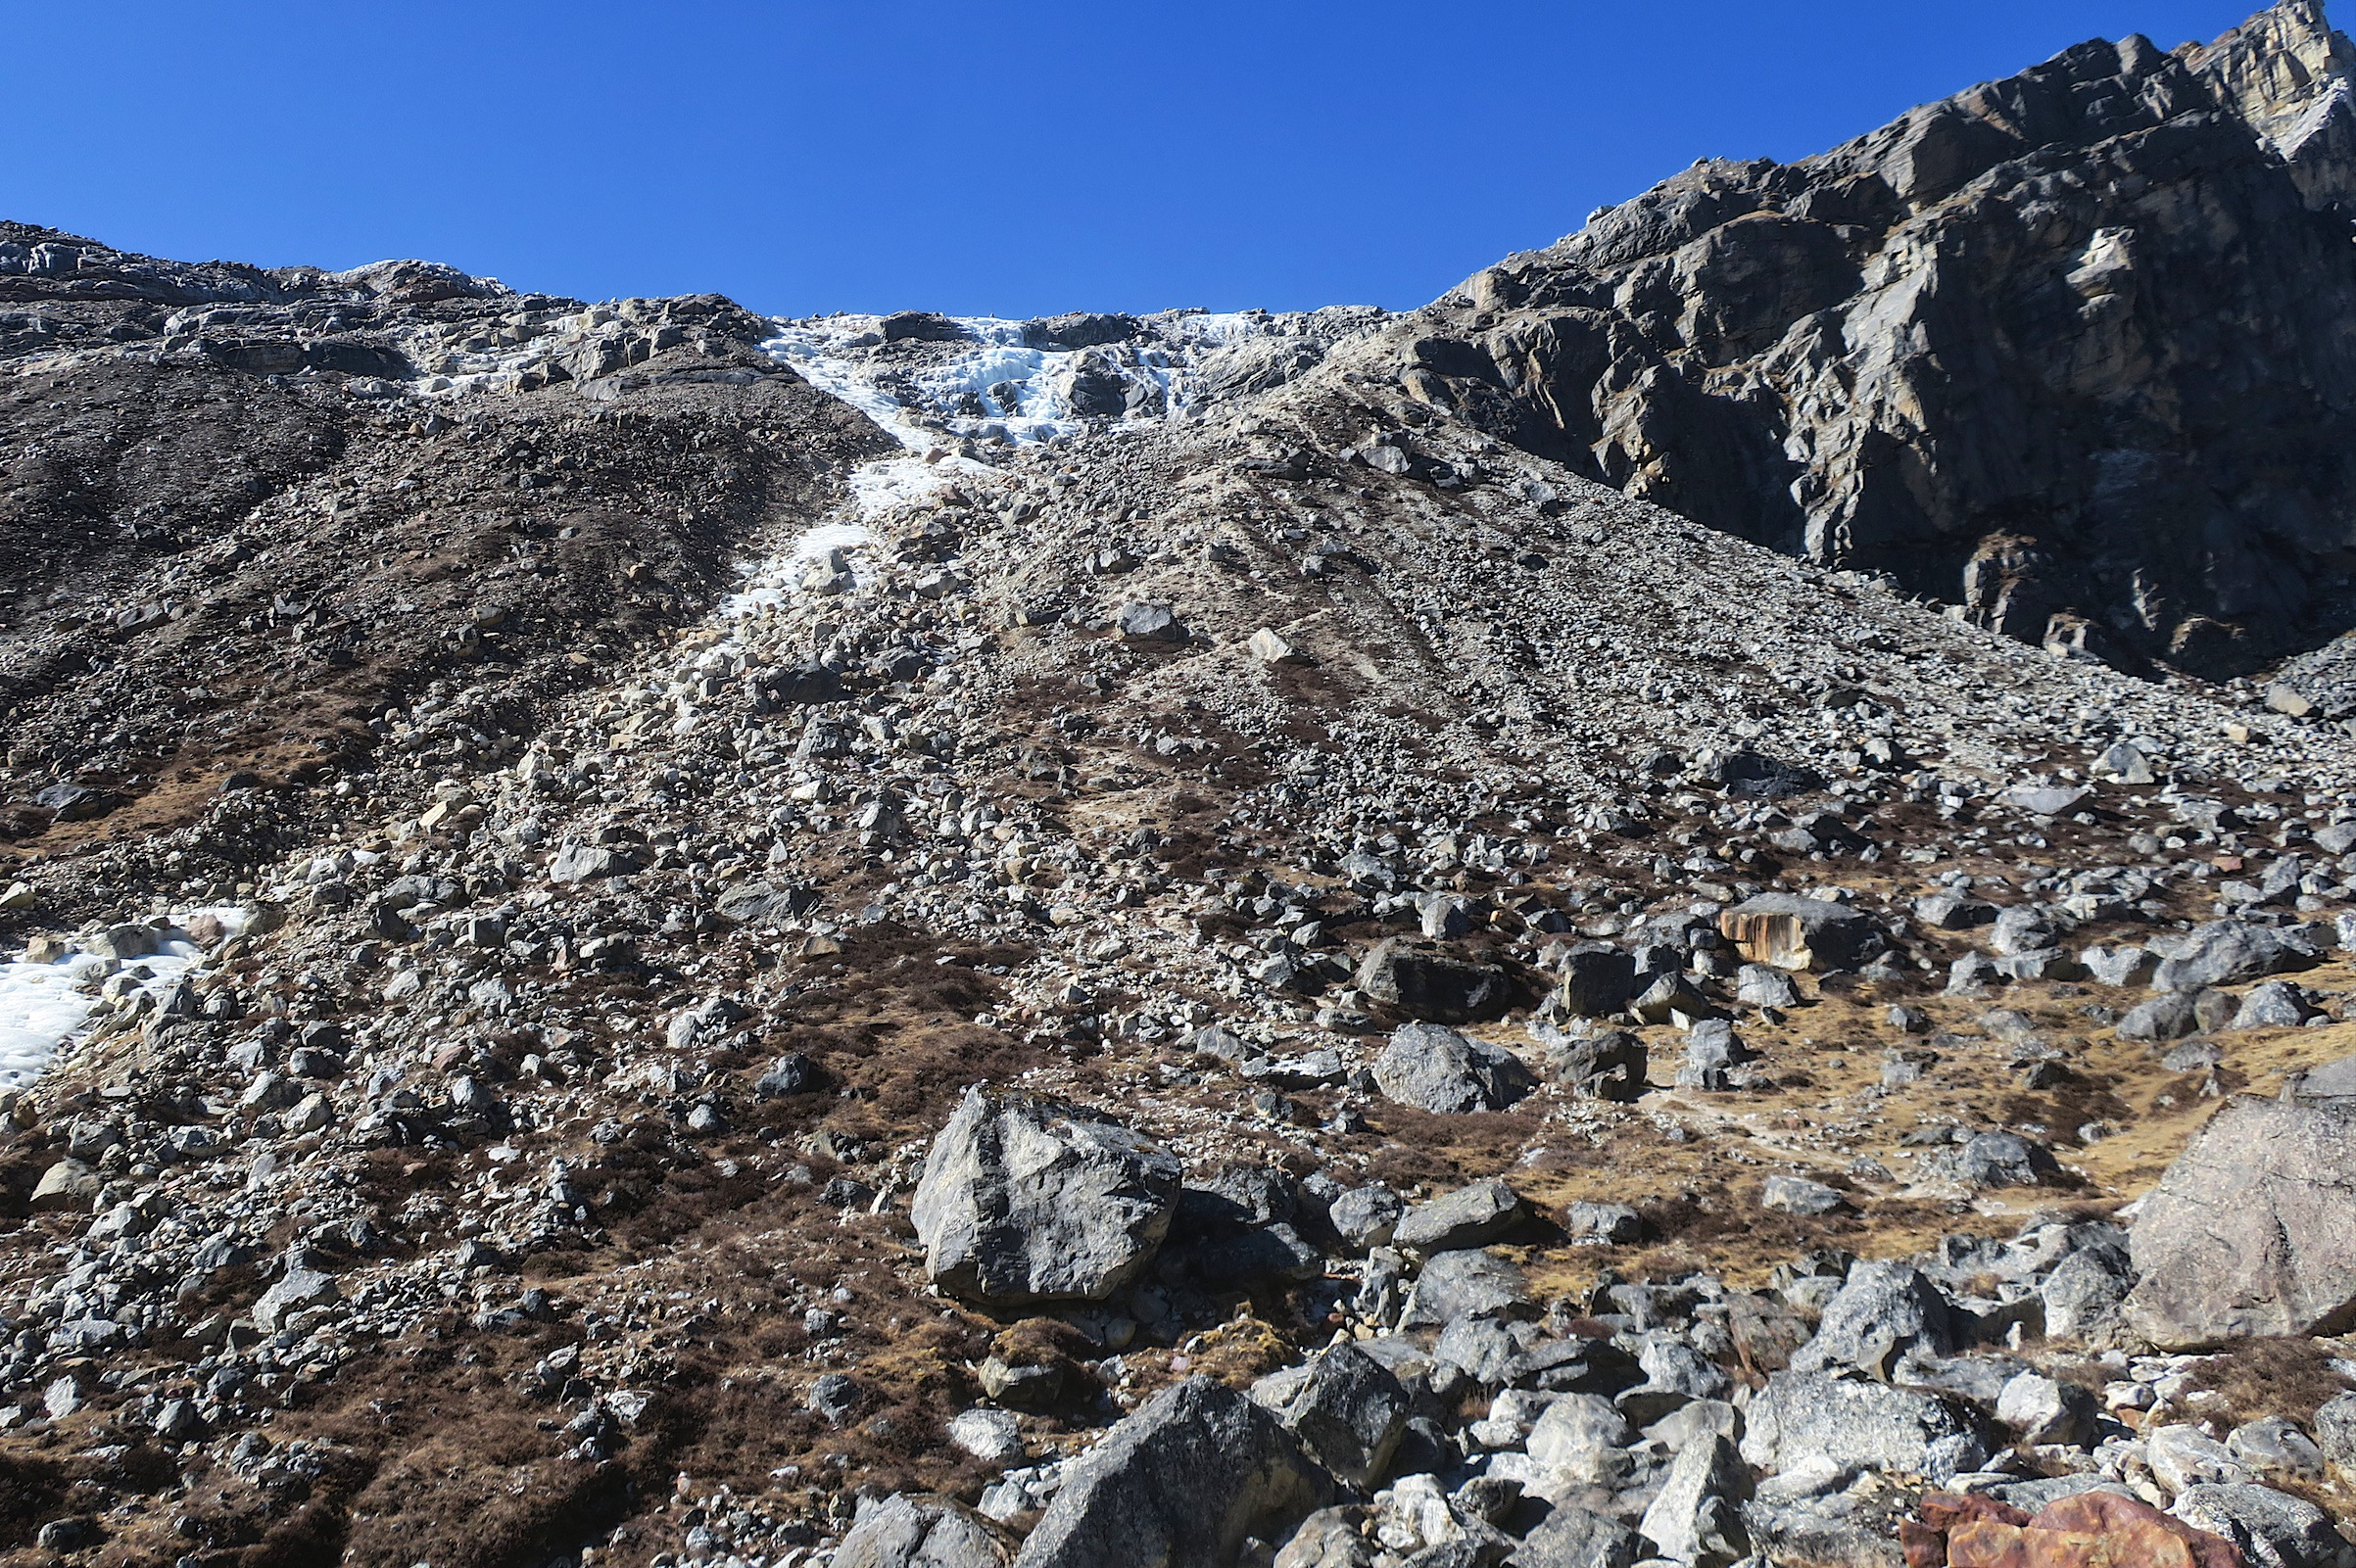 The trail up Renjo La looks tricky, but is actually really well marked with cairns.